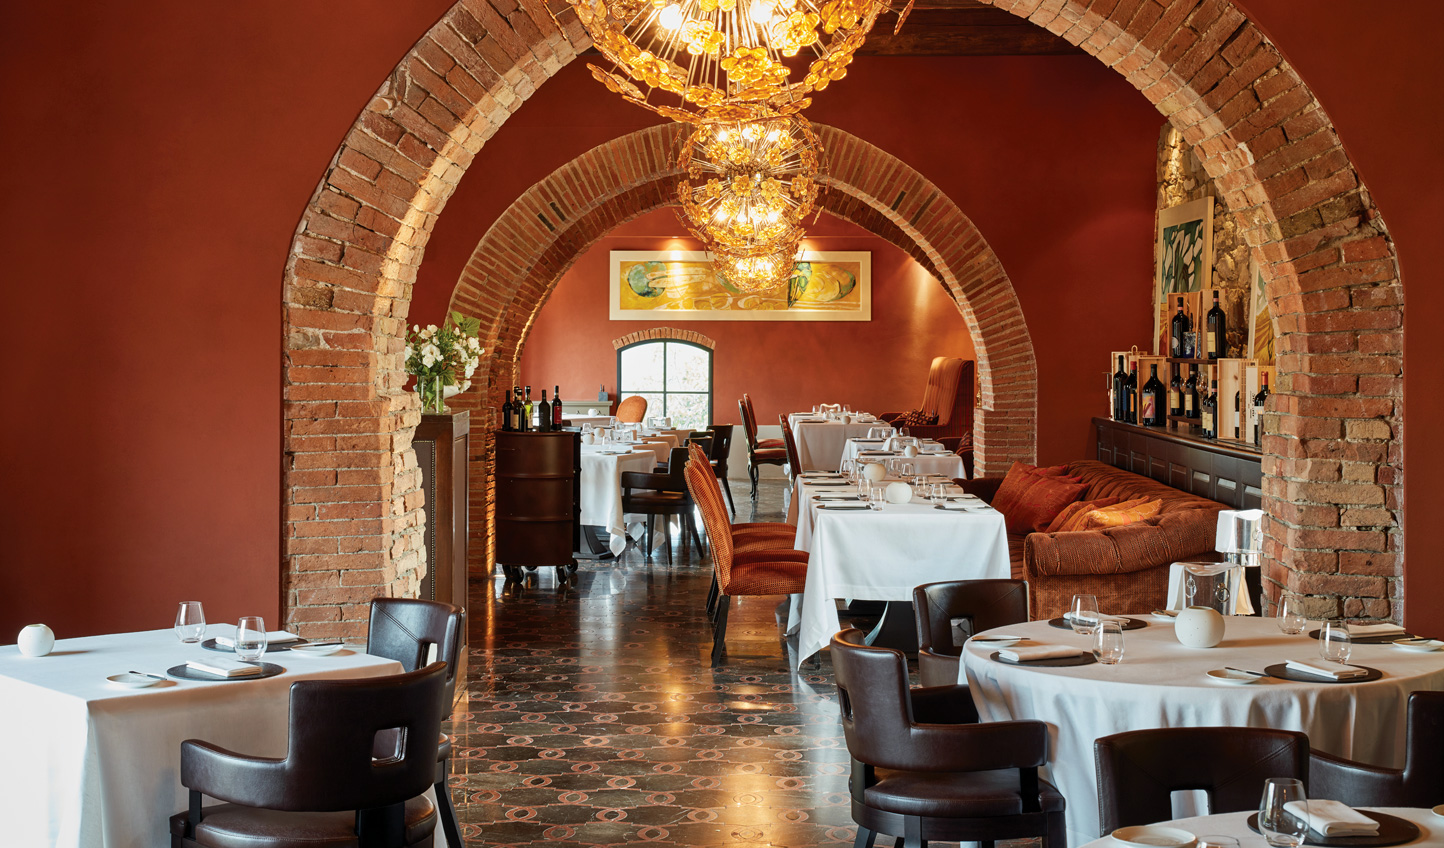 Fine dining paired with local produce at Tosca